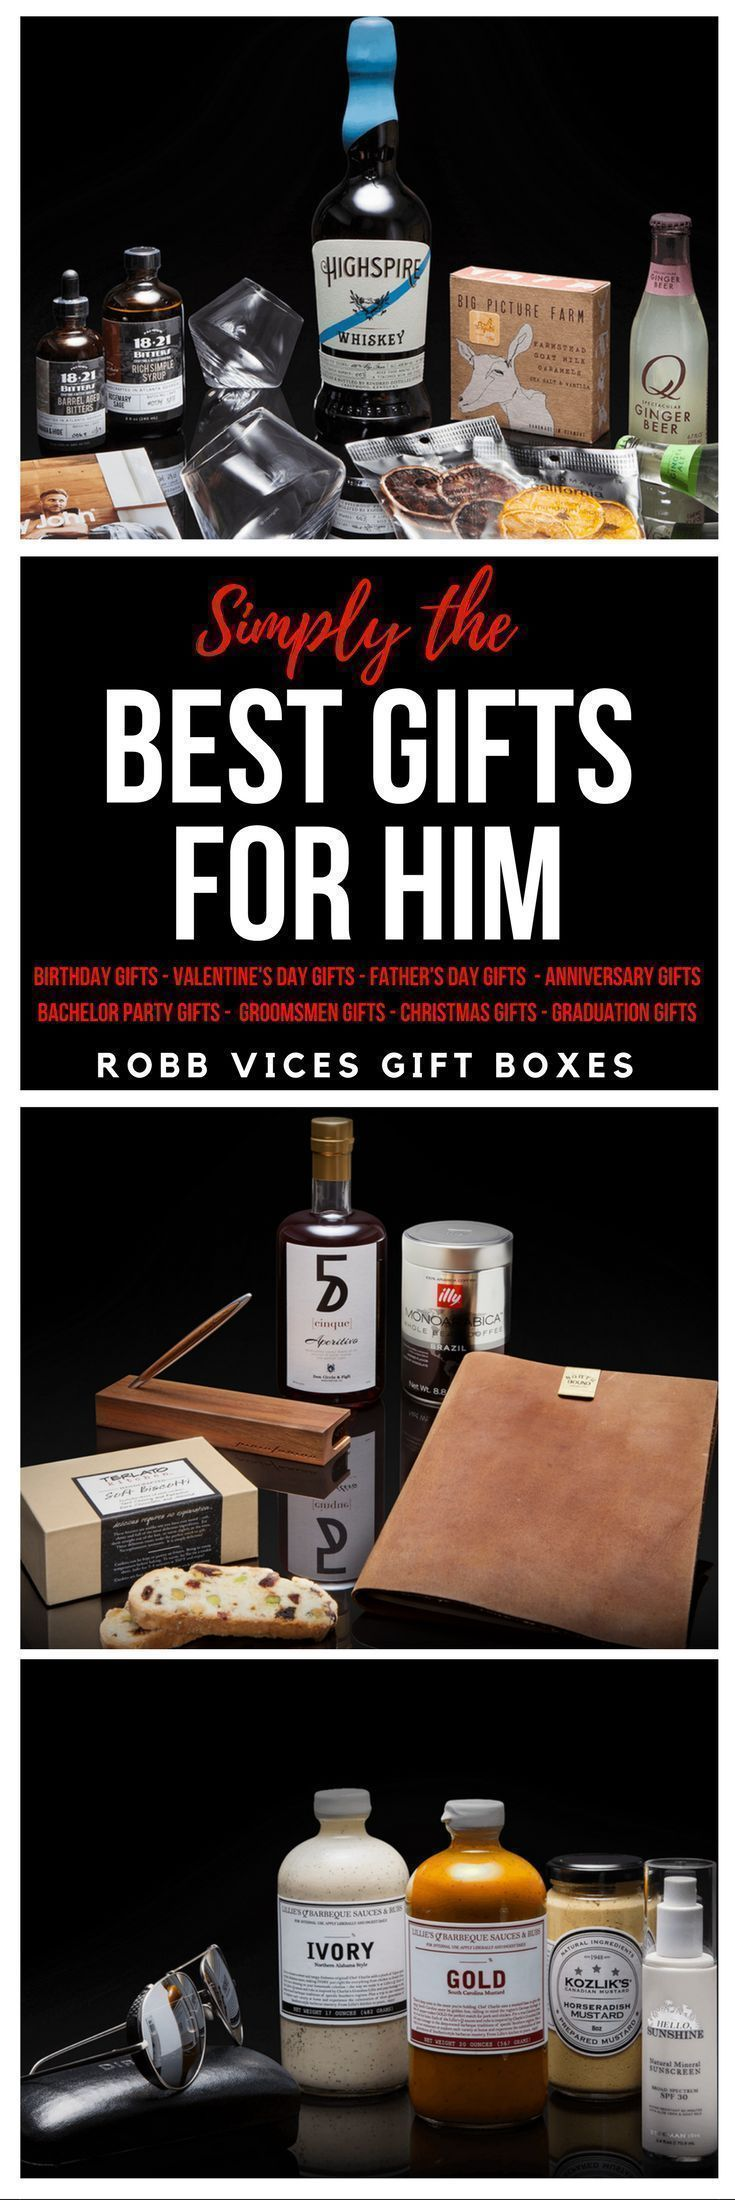 The PERFECT Gift for Him!  Robb Vices Specialty Gift Boxes!  Gifts for Him | Gifts for Dad | Gifts for a Man | Gift for Brother | Groomsmen Gifts | Grooms Gift | Bachelor Gift | Christmas Gift for Him| Birthday Gift for Him| Father's Day Gift | Valentine's Day Gift for Him  | Graduation Gift for Him | New Dad Gift | Gift for Boyfriend | Anniversary Gift for Him | affiliate #groomsmengifts